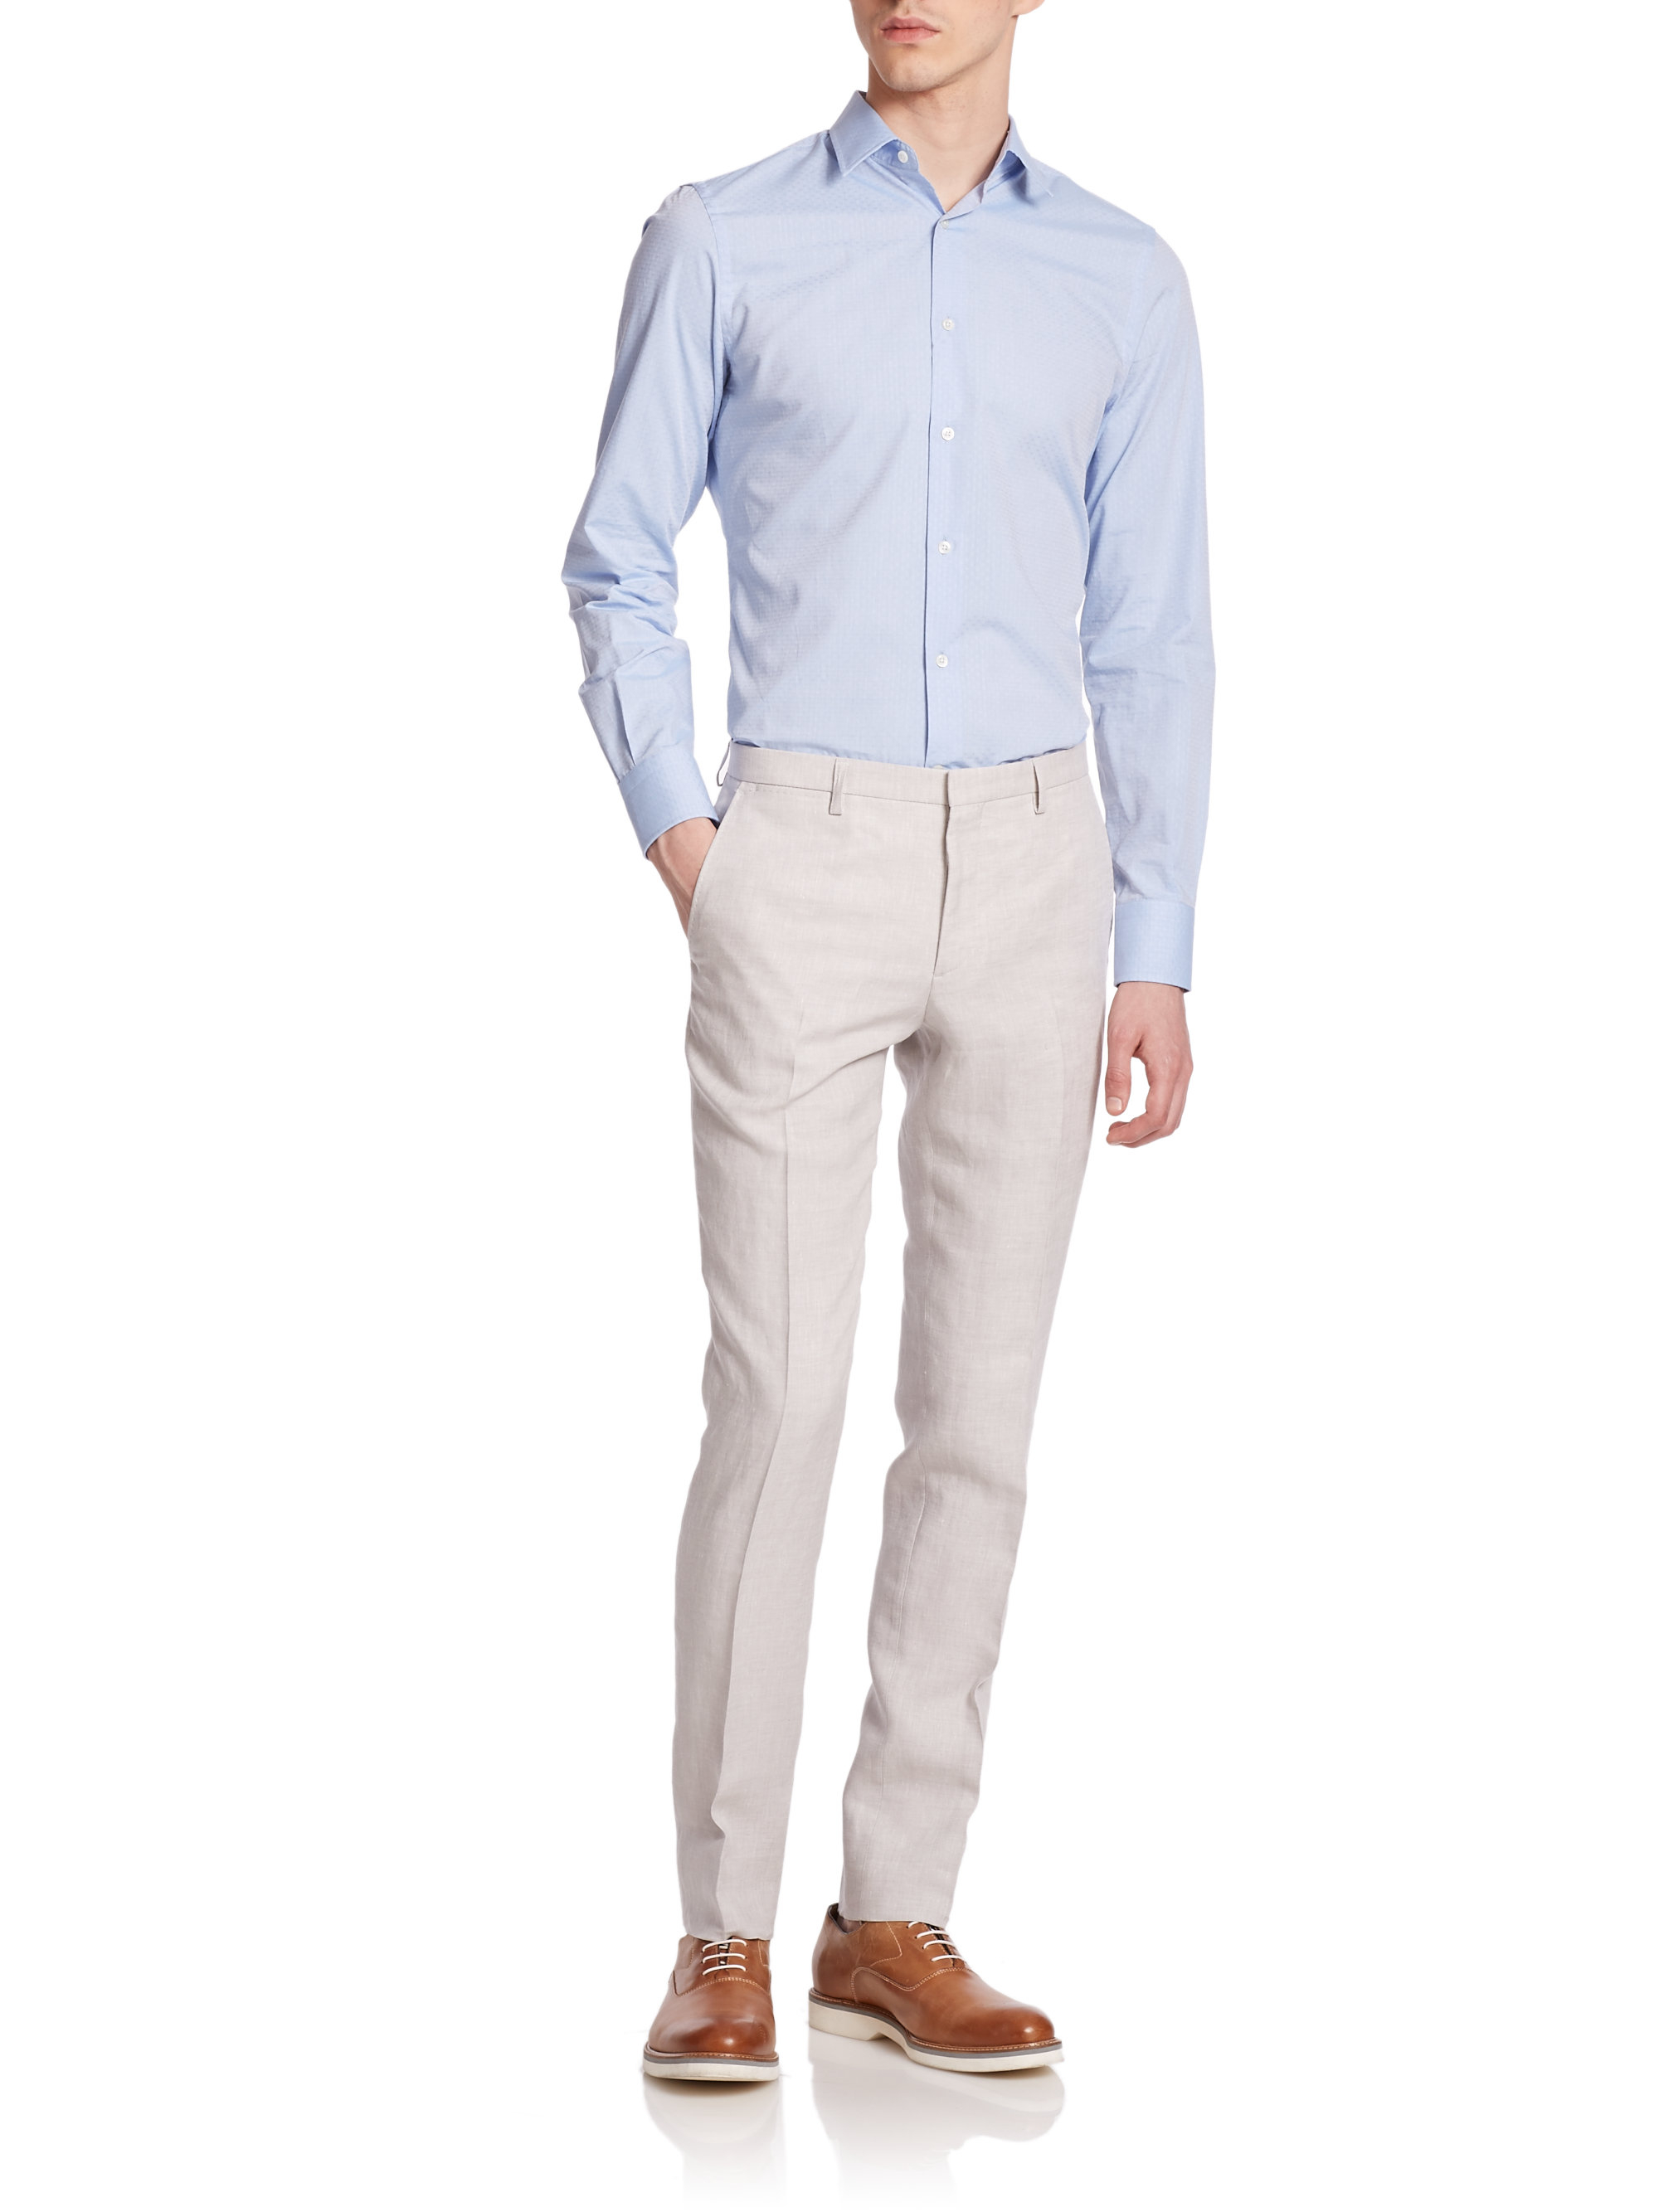 Mens Gray Pants at Macy's come in all styles and sizes. Shop Men's Pants: Dress Pants, Chinos, Khakis, Gray pants and more at Macy's! Macy's Presents: The Edit- A curated mix of fashion and inspiration Check It Out. BAR III Light Gray Chambray Slim-Fit Pants, Created for Macy's.